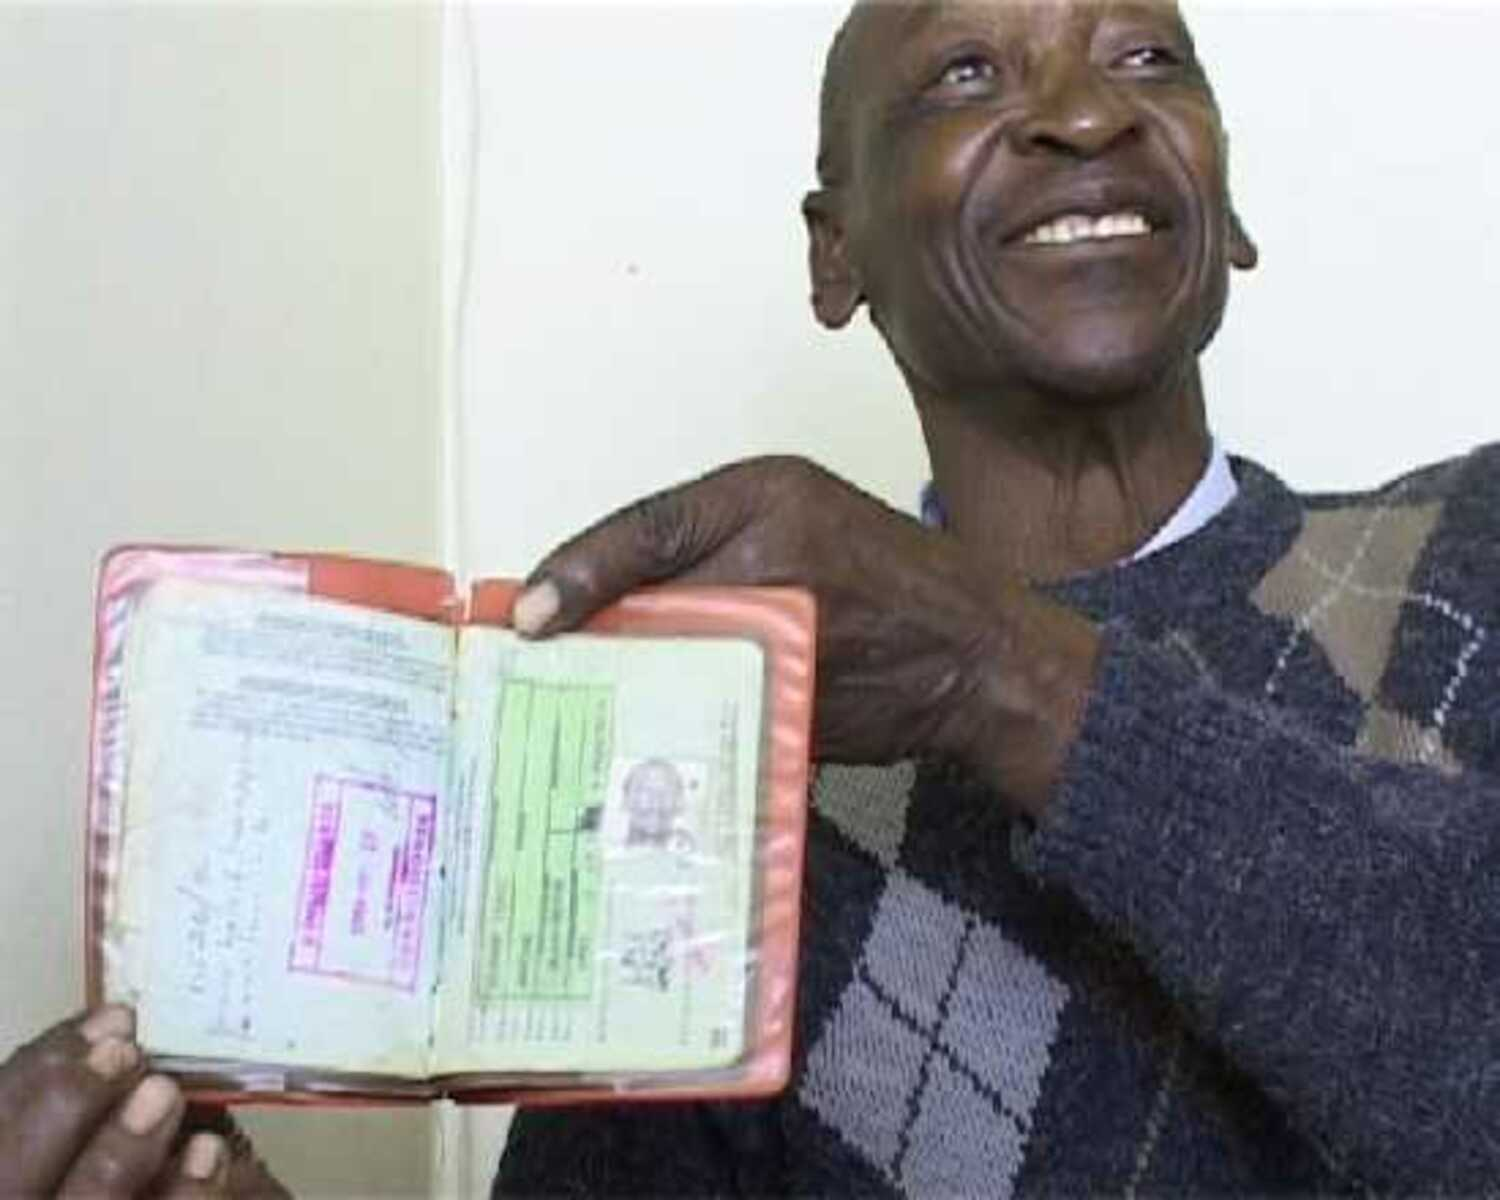 Isaac Malome Masike, a semi-retired small business man from Rammolutsi, shows his old pass book during an oral history interview with Dale McKinley and Ahmed Veriava.